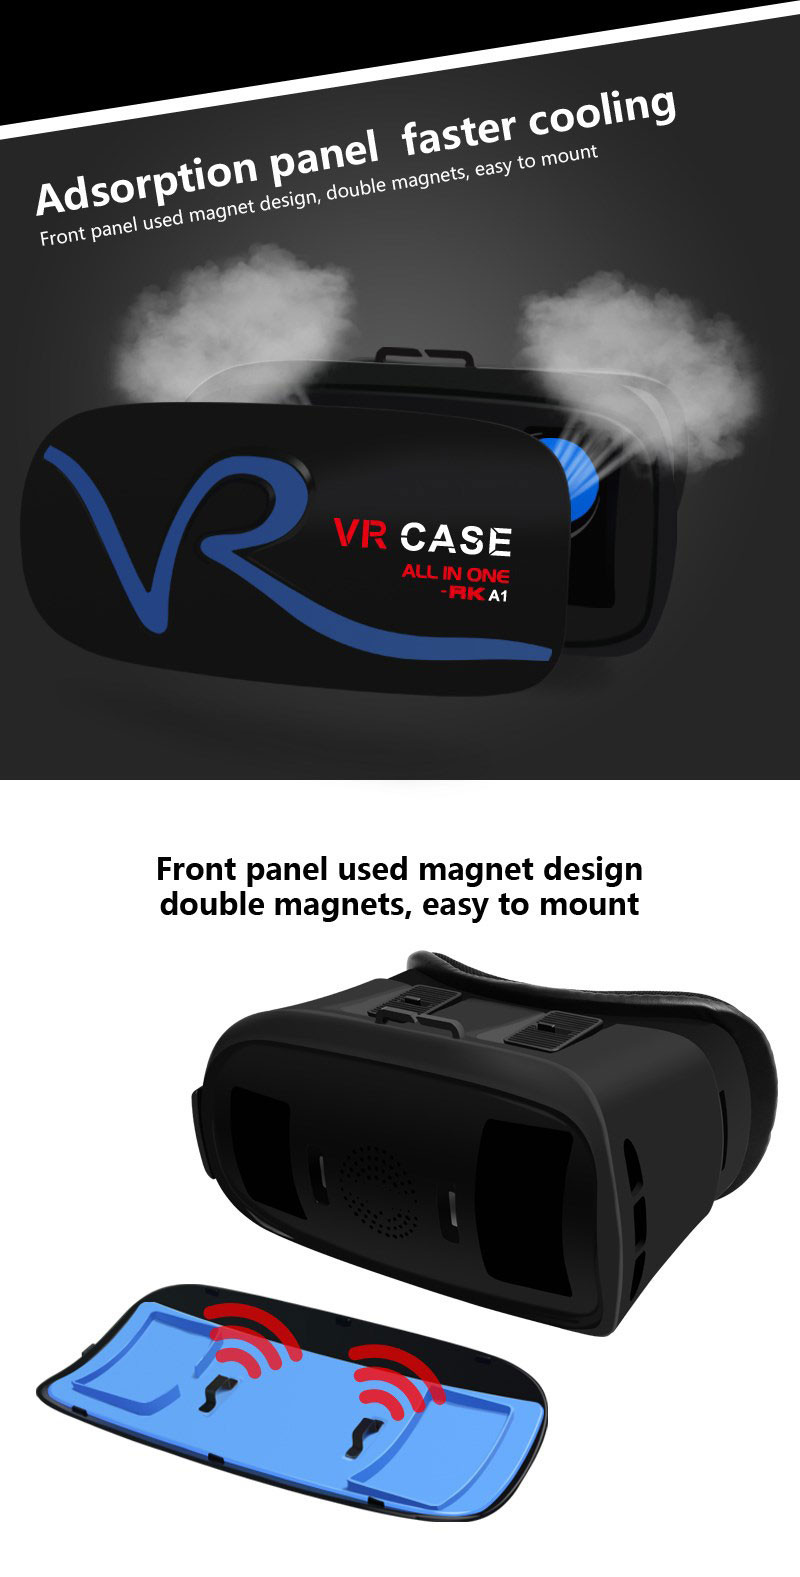 All IN ONE VR Glasses VR CASE RKA1 VR Headset Virtual Reality Glasses for 4-5.8 inches iPhone Mobile 3D IMAX Touch Control Blue 15